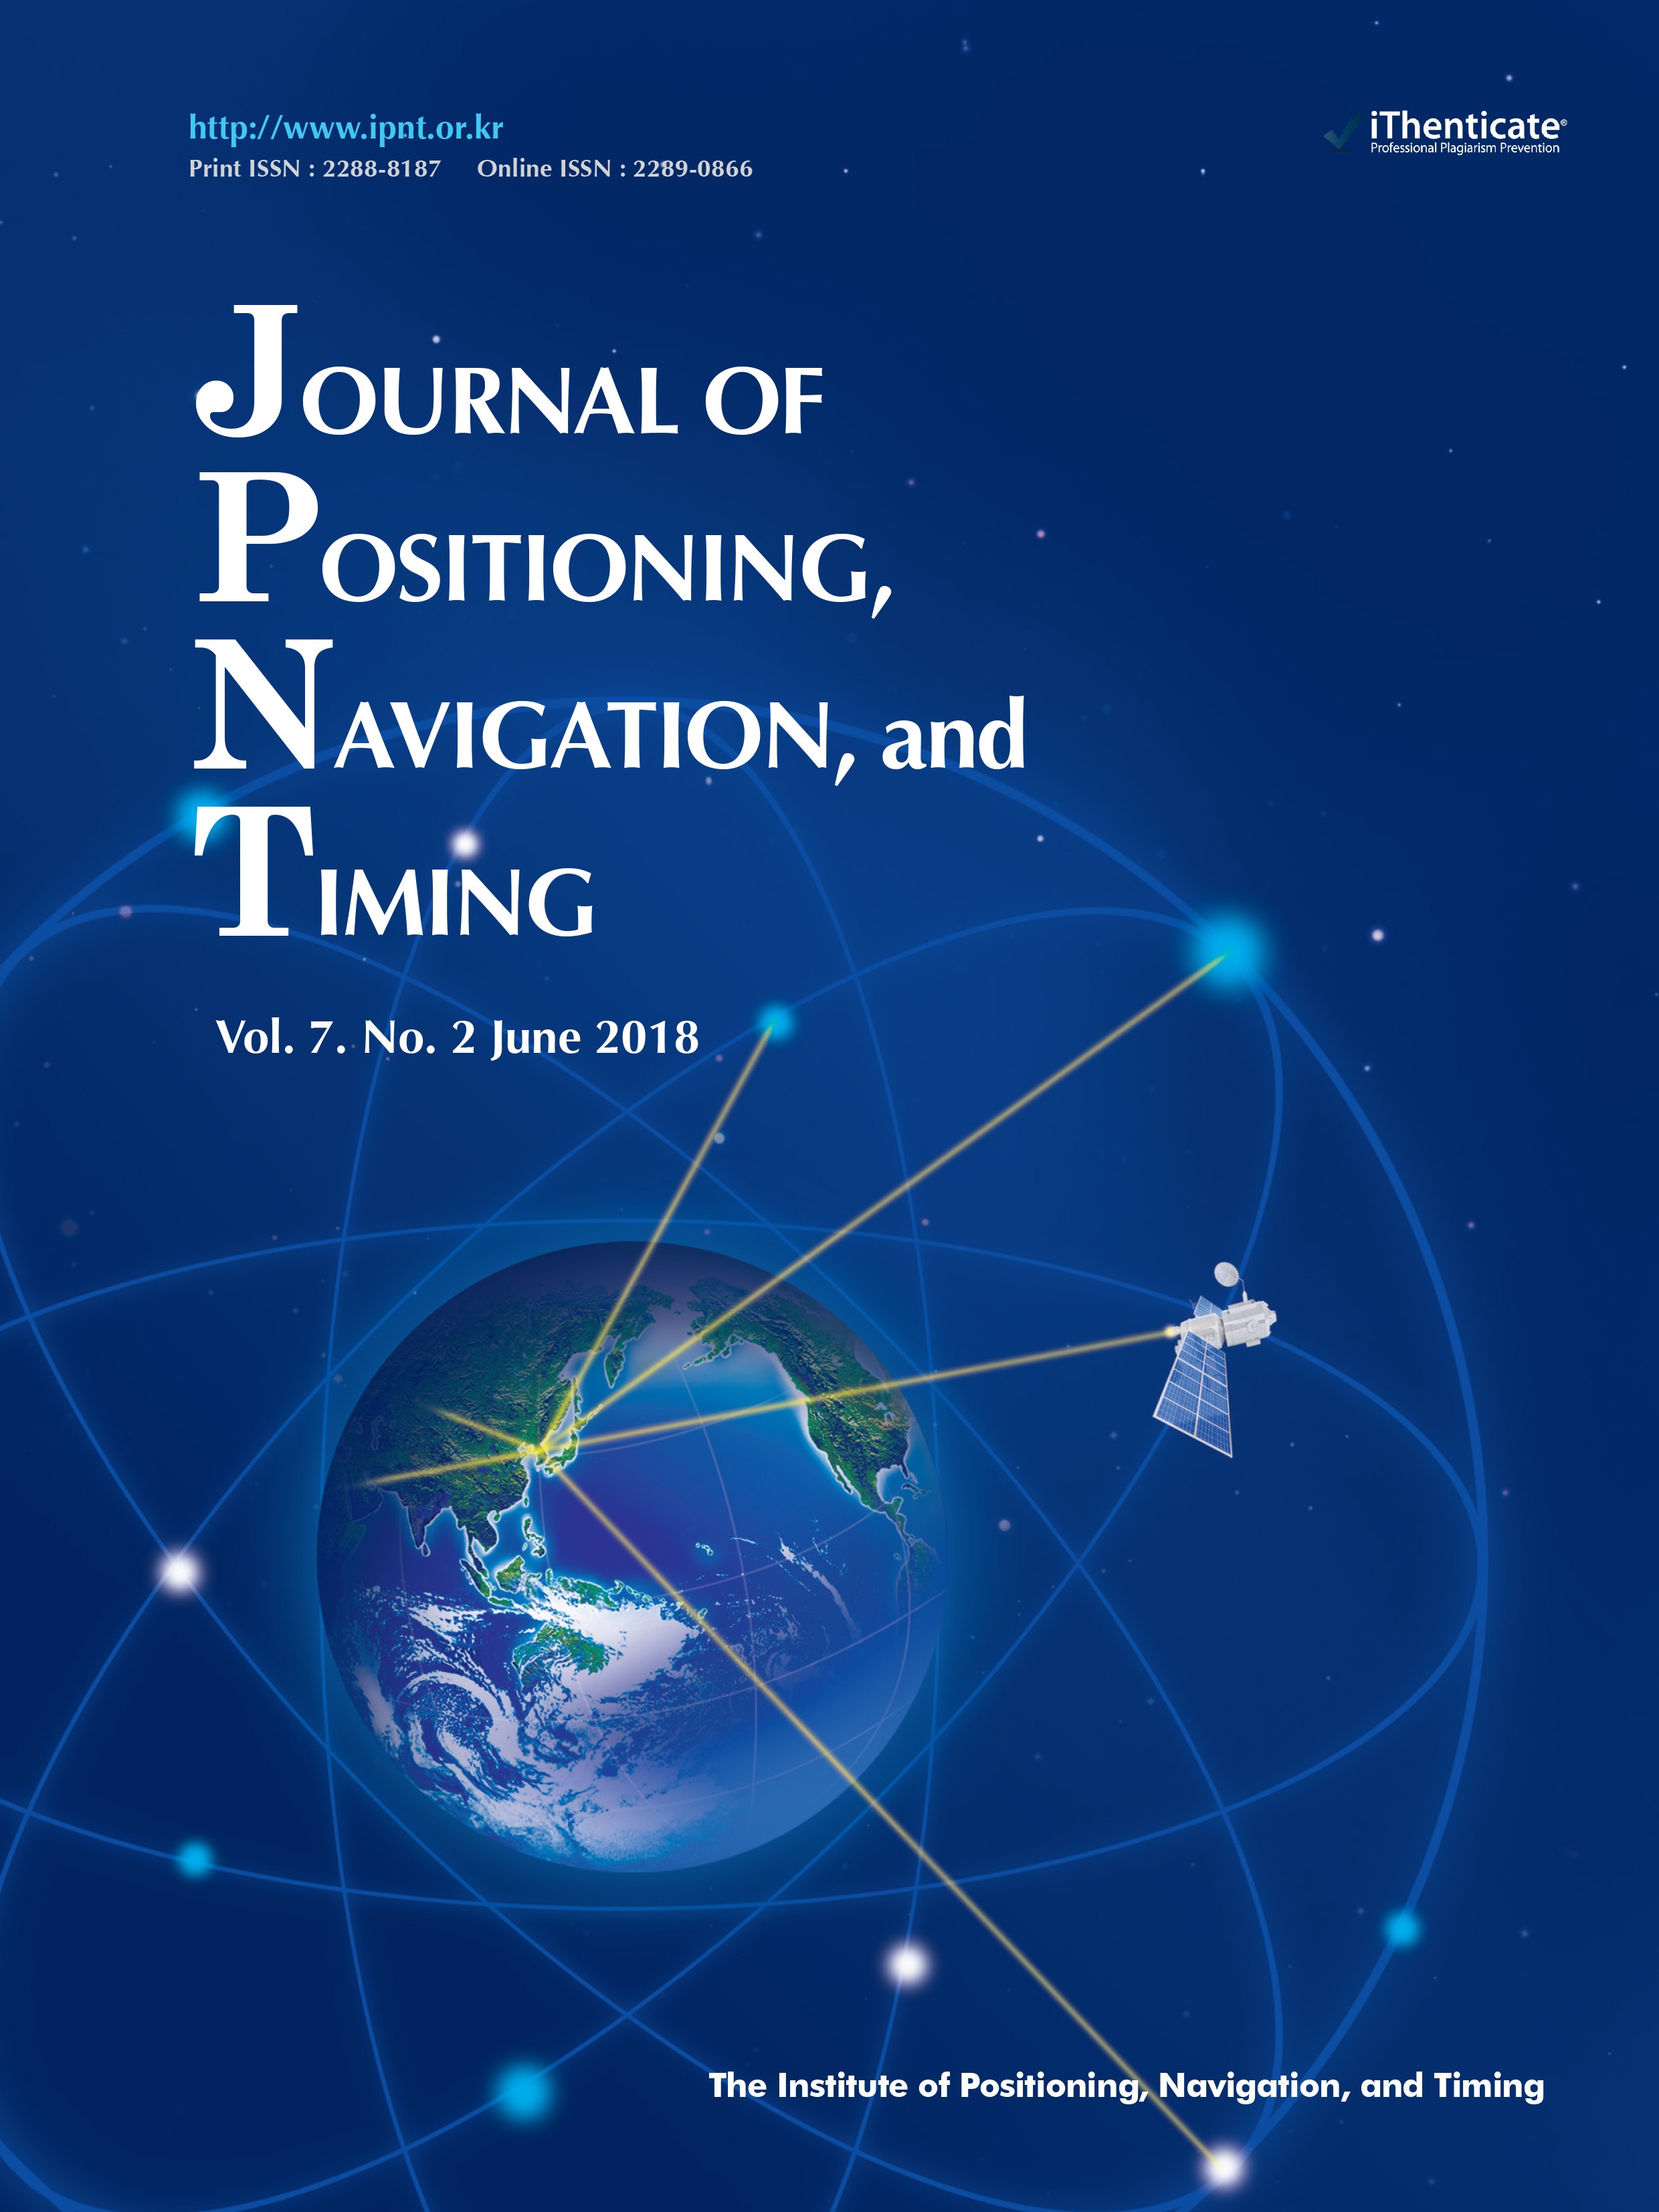 Journal of Positioning, Navigation, and Timing